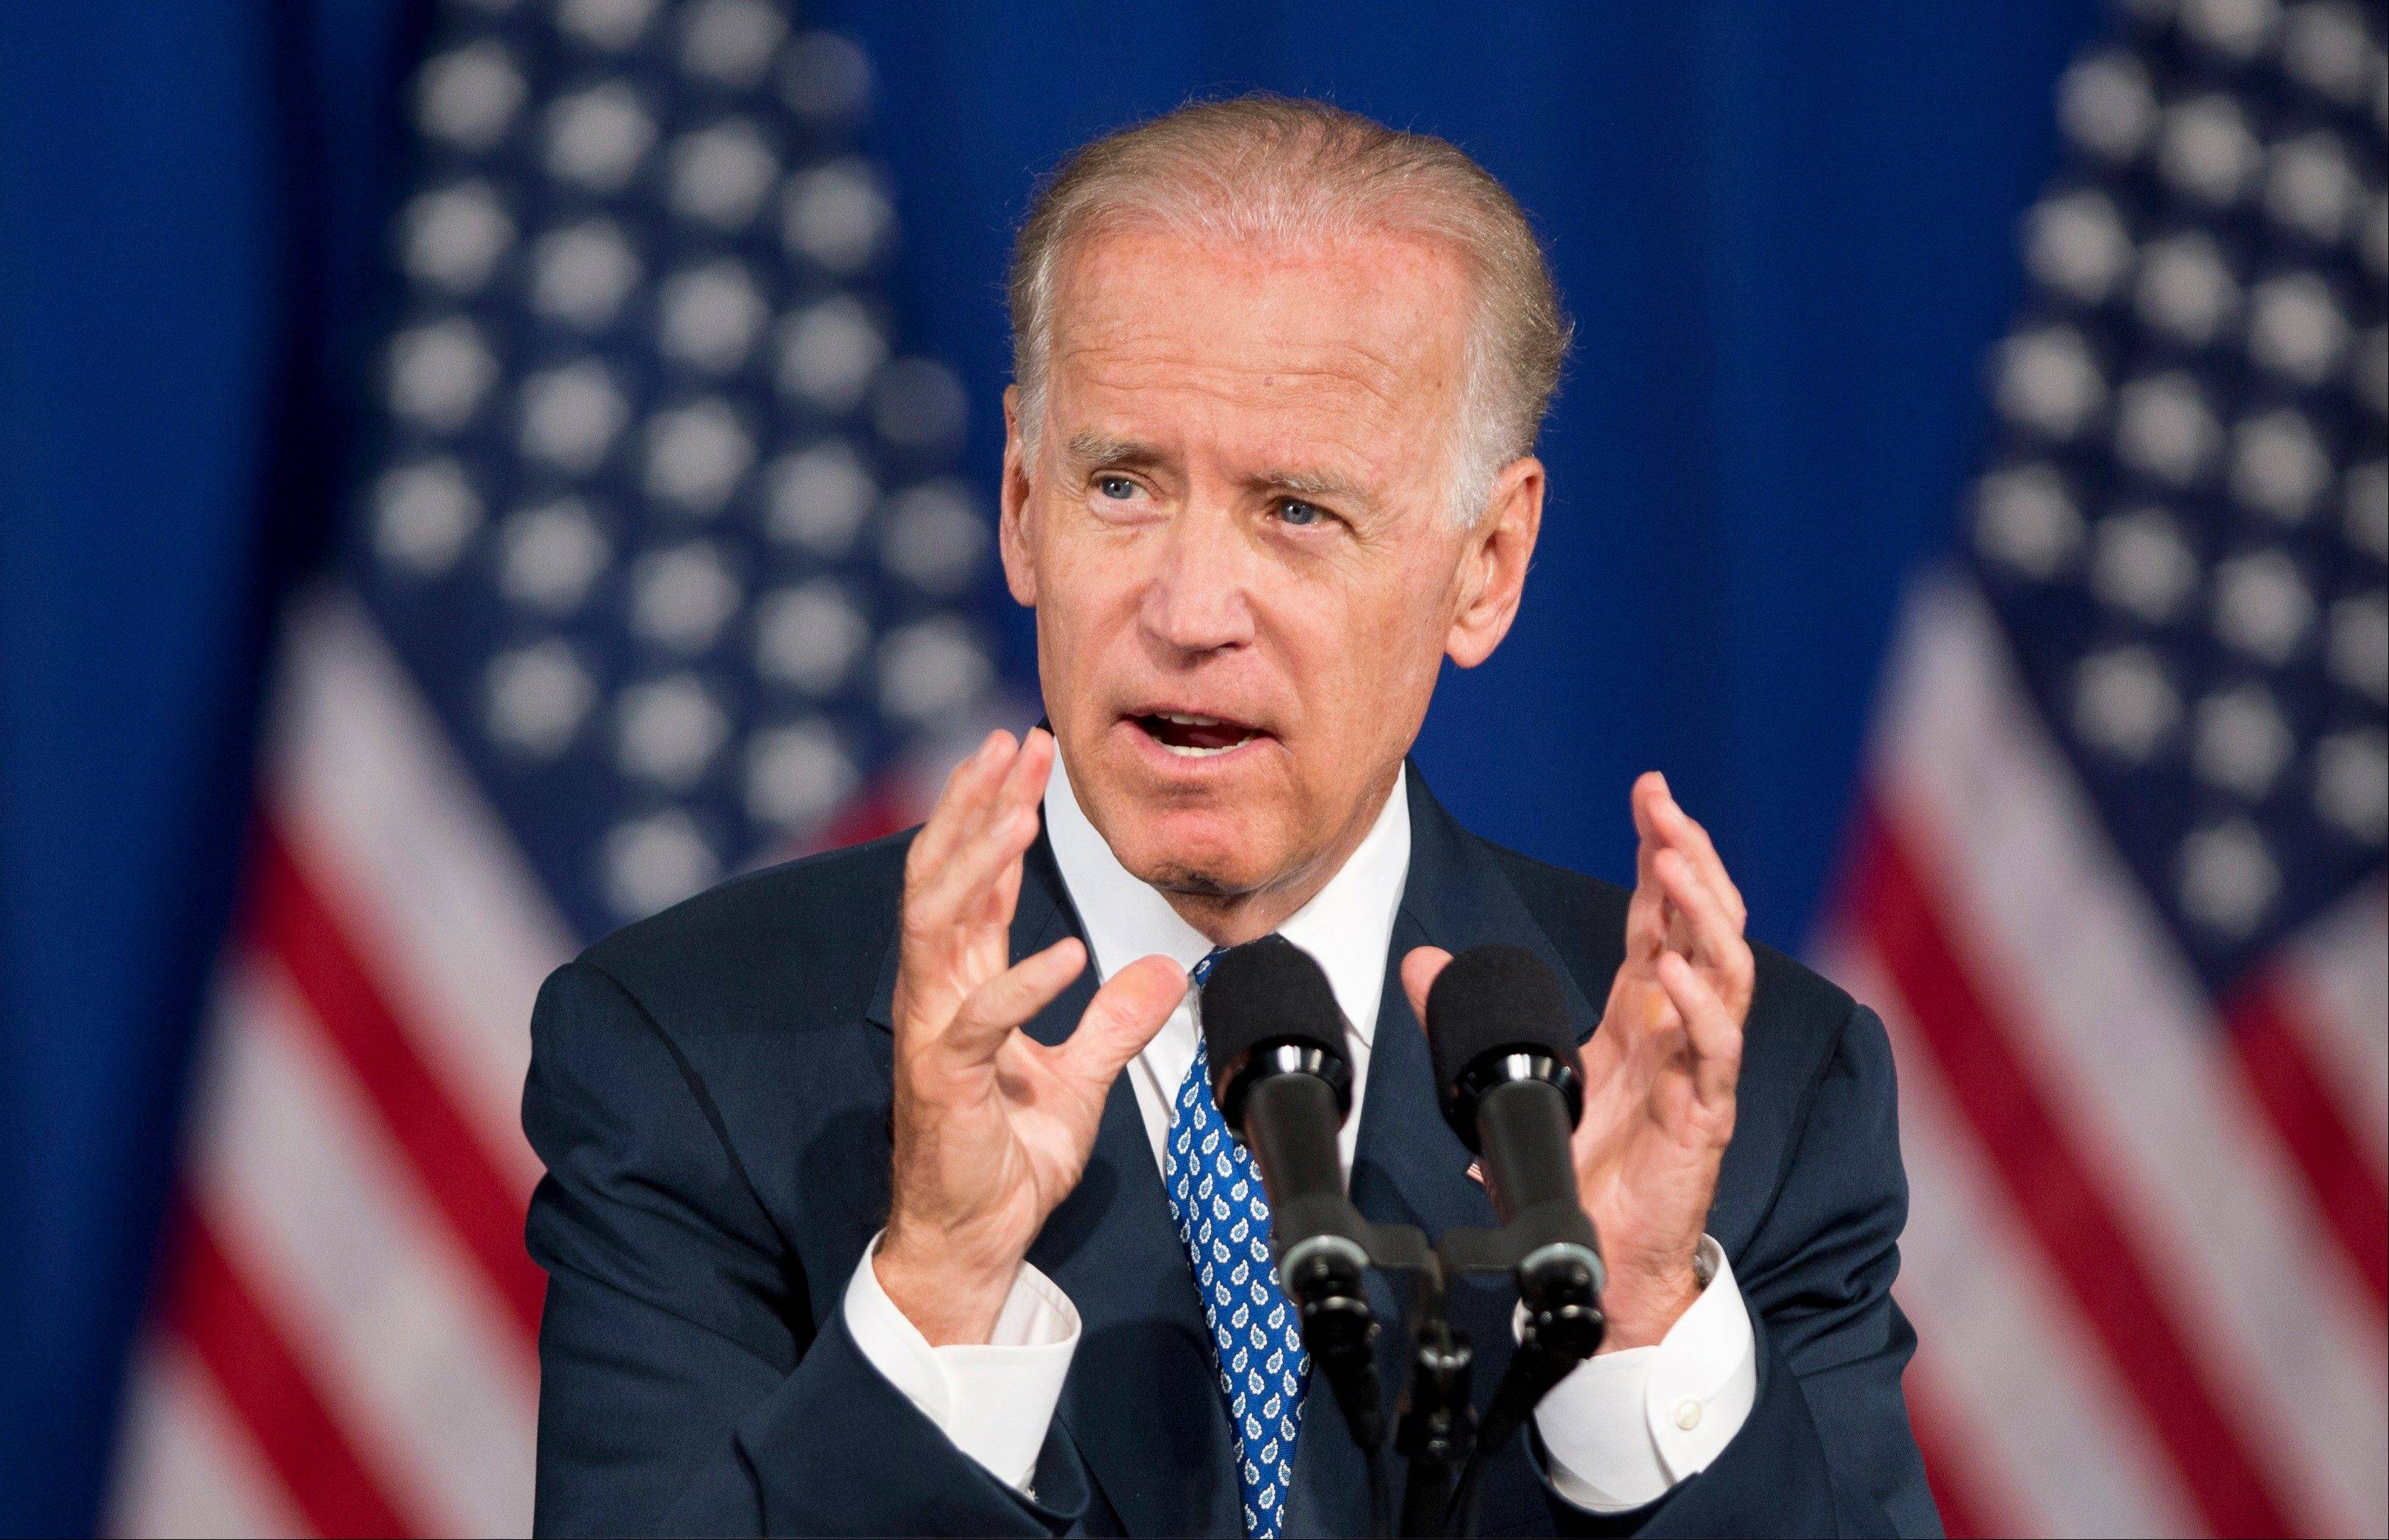 Vice President Joe Biden speaks in Washington last July.